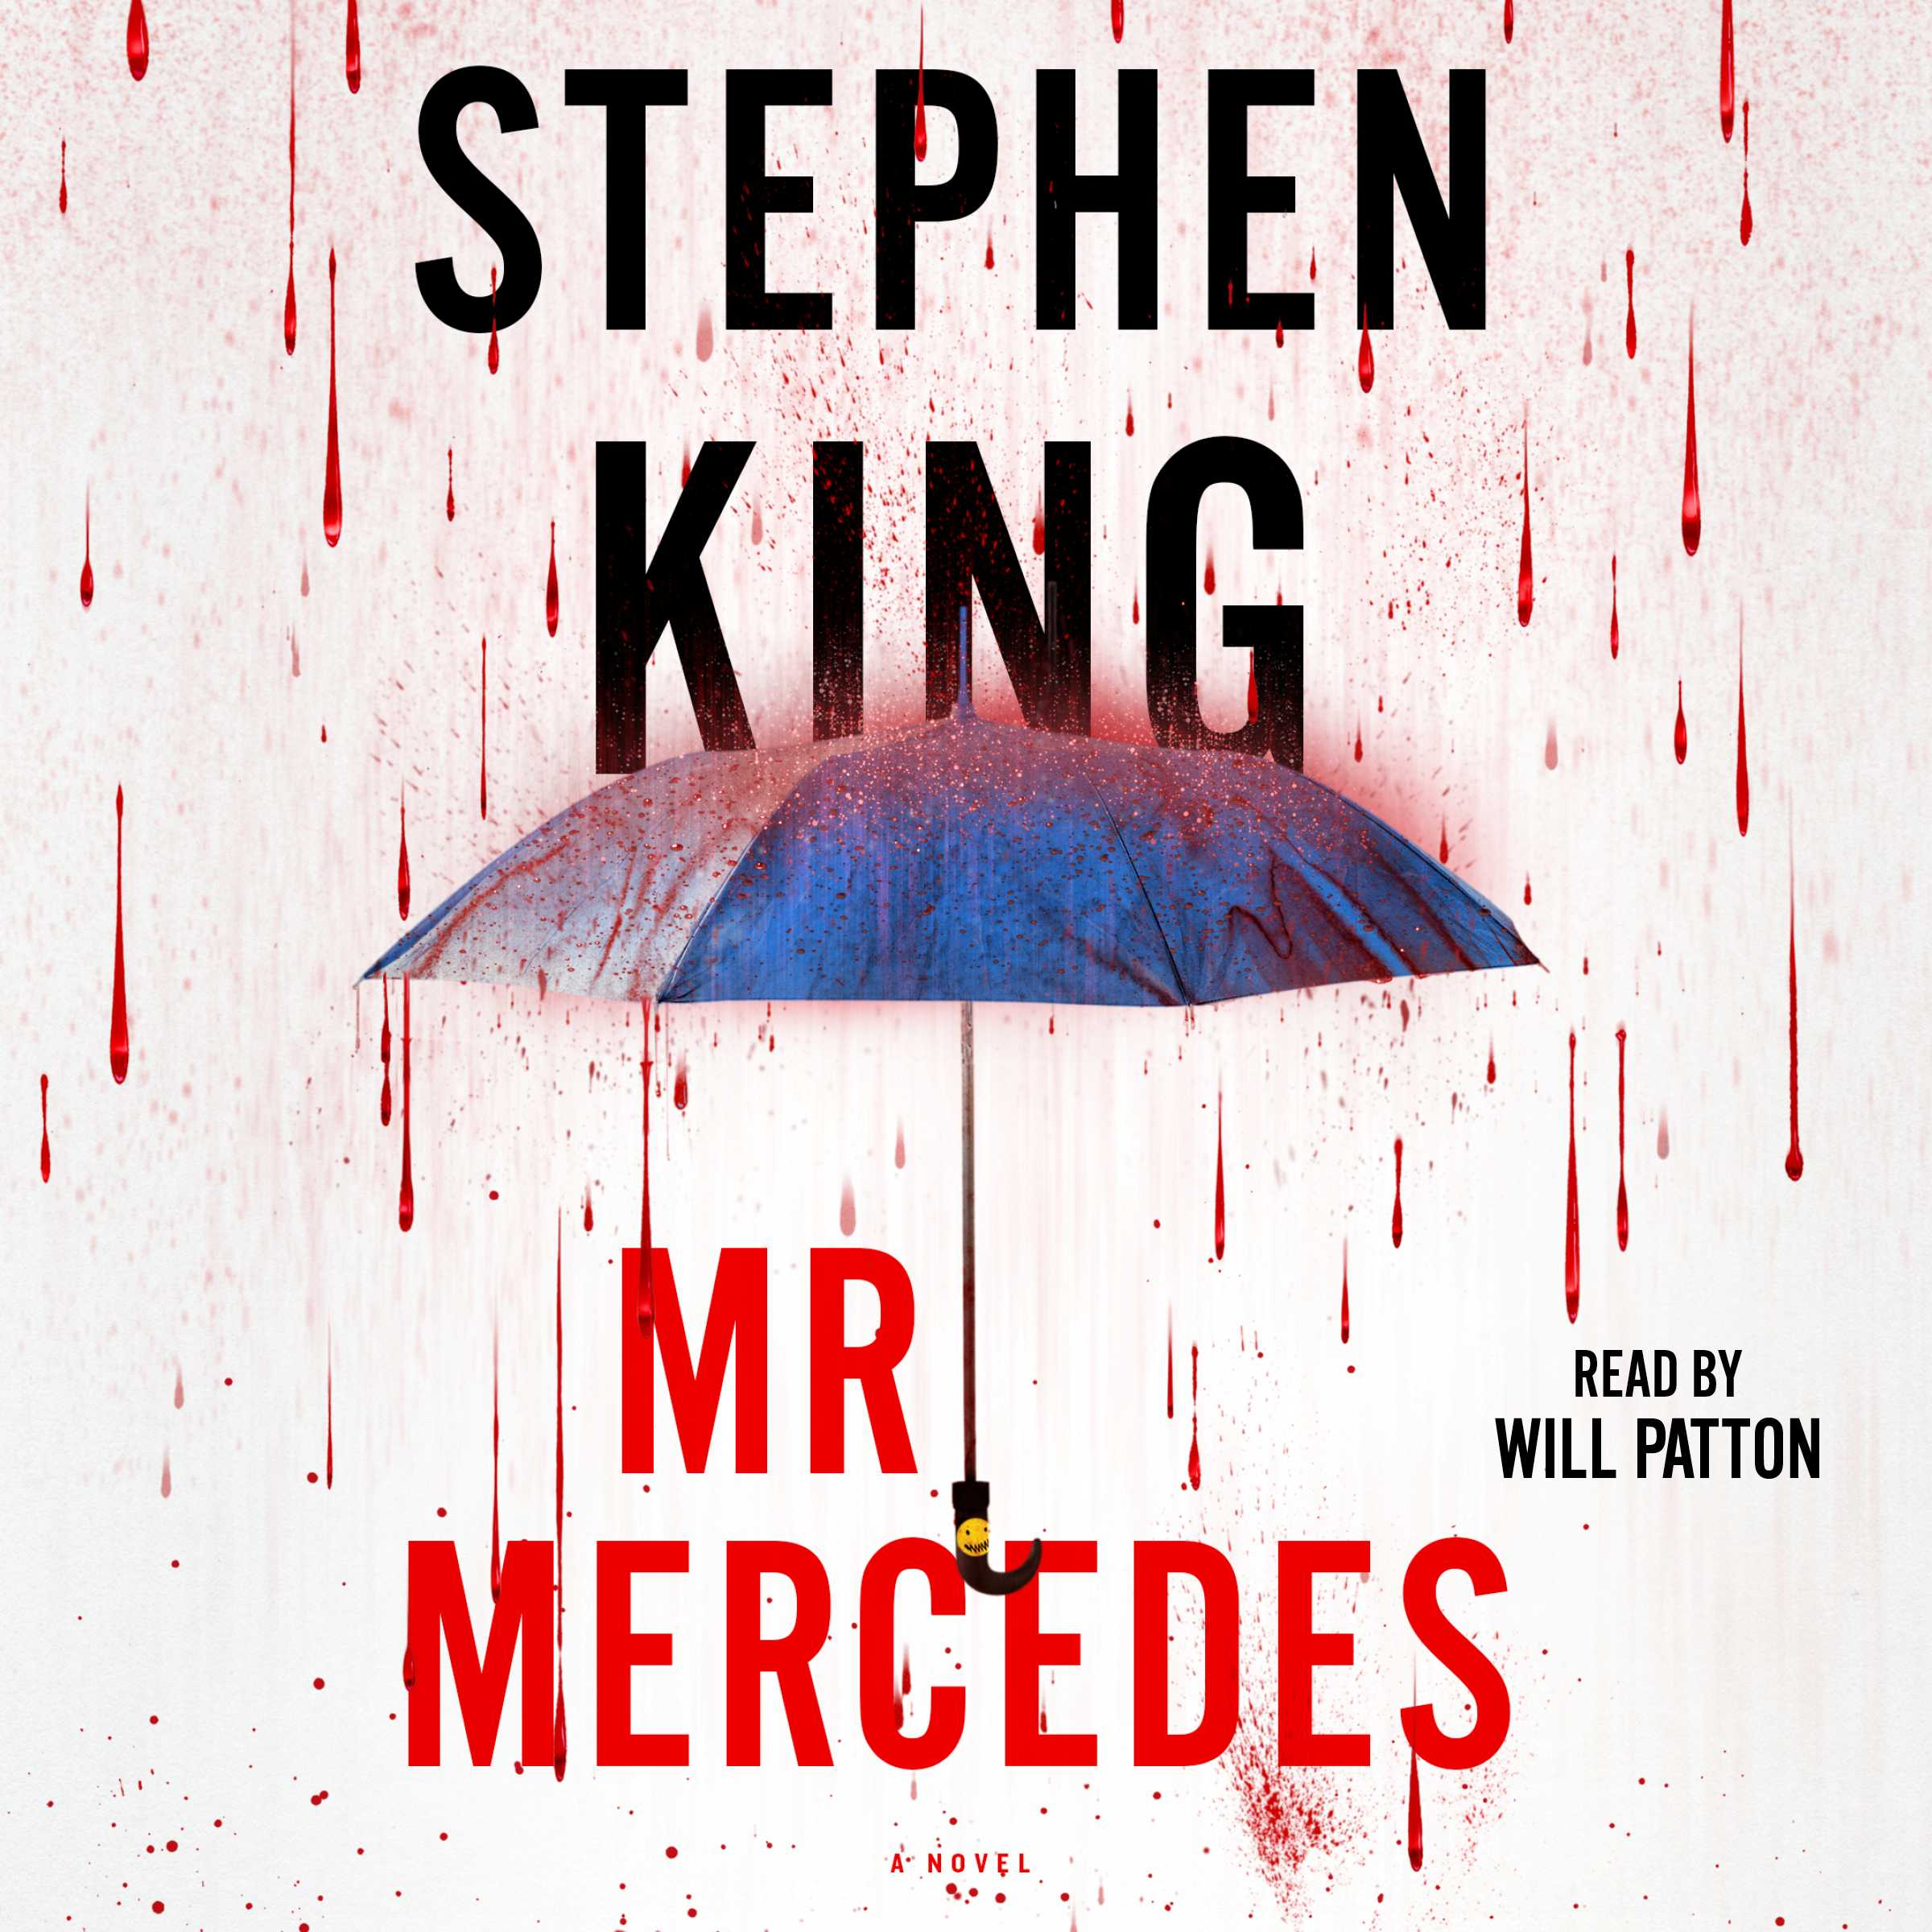 Mr-mercedes-9781442369795_hr